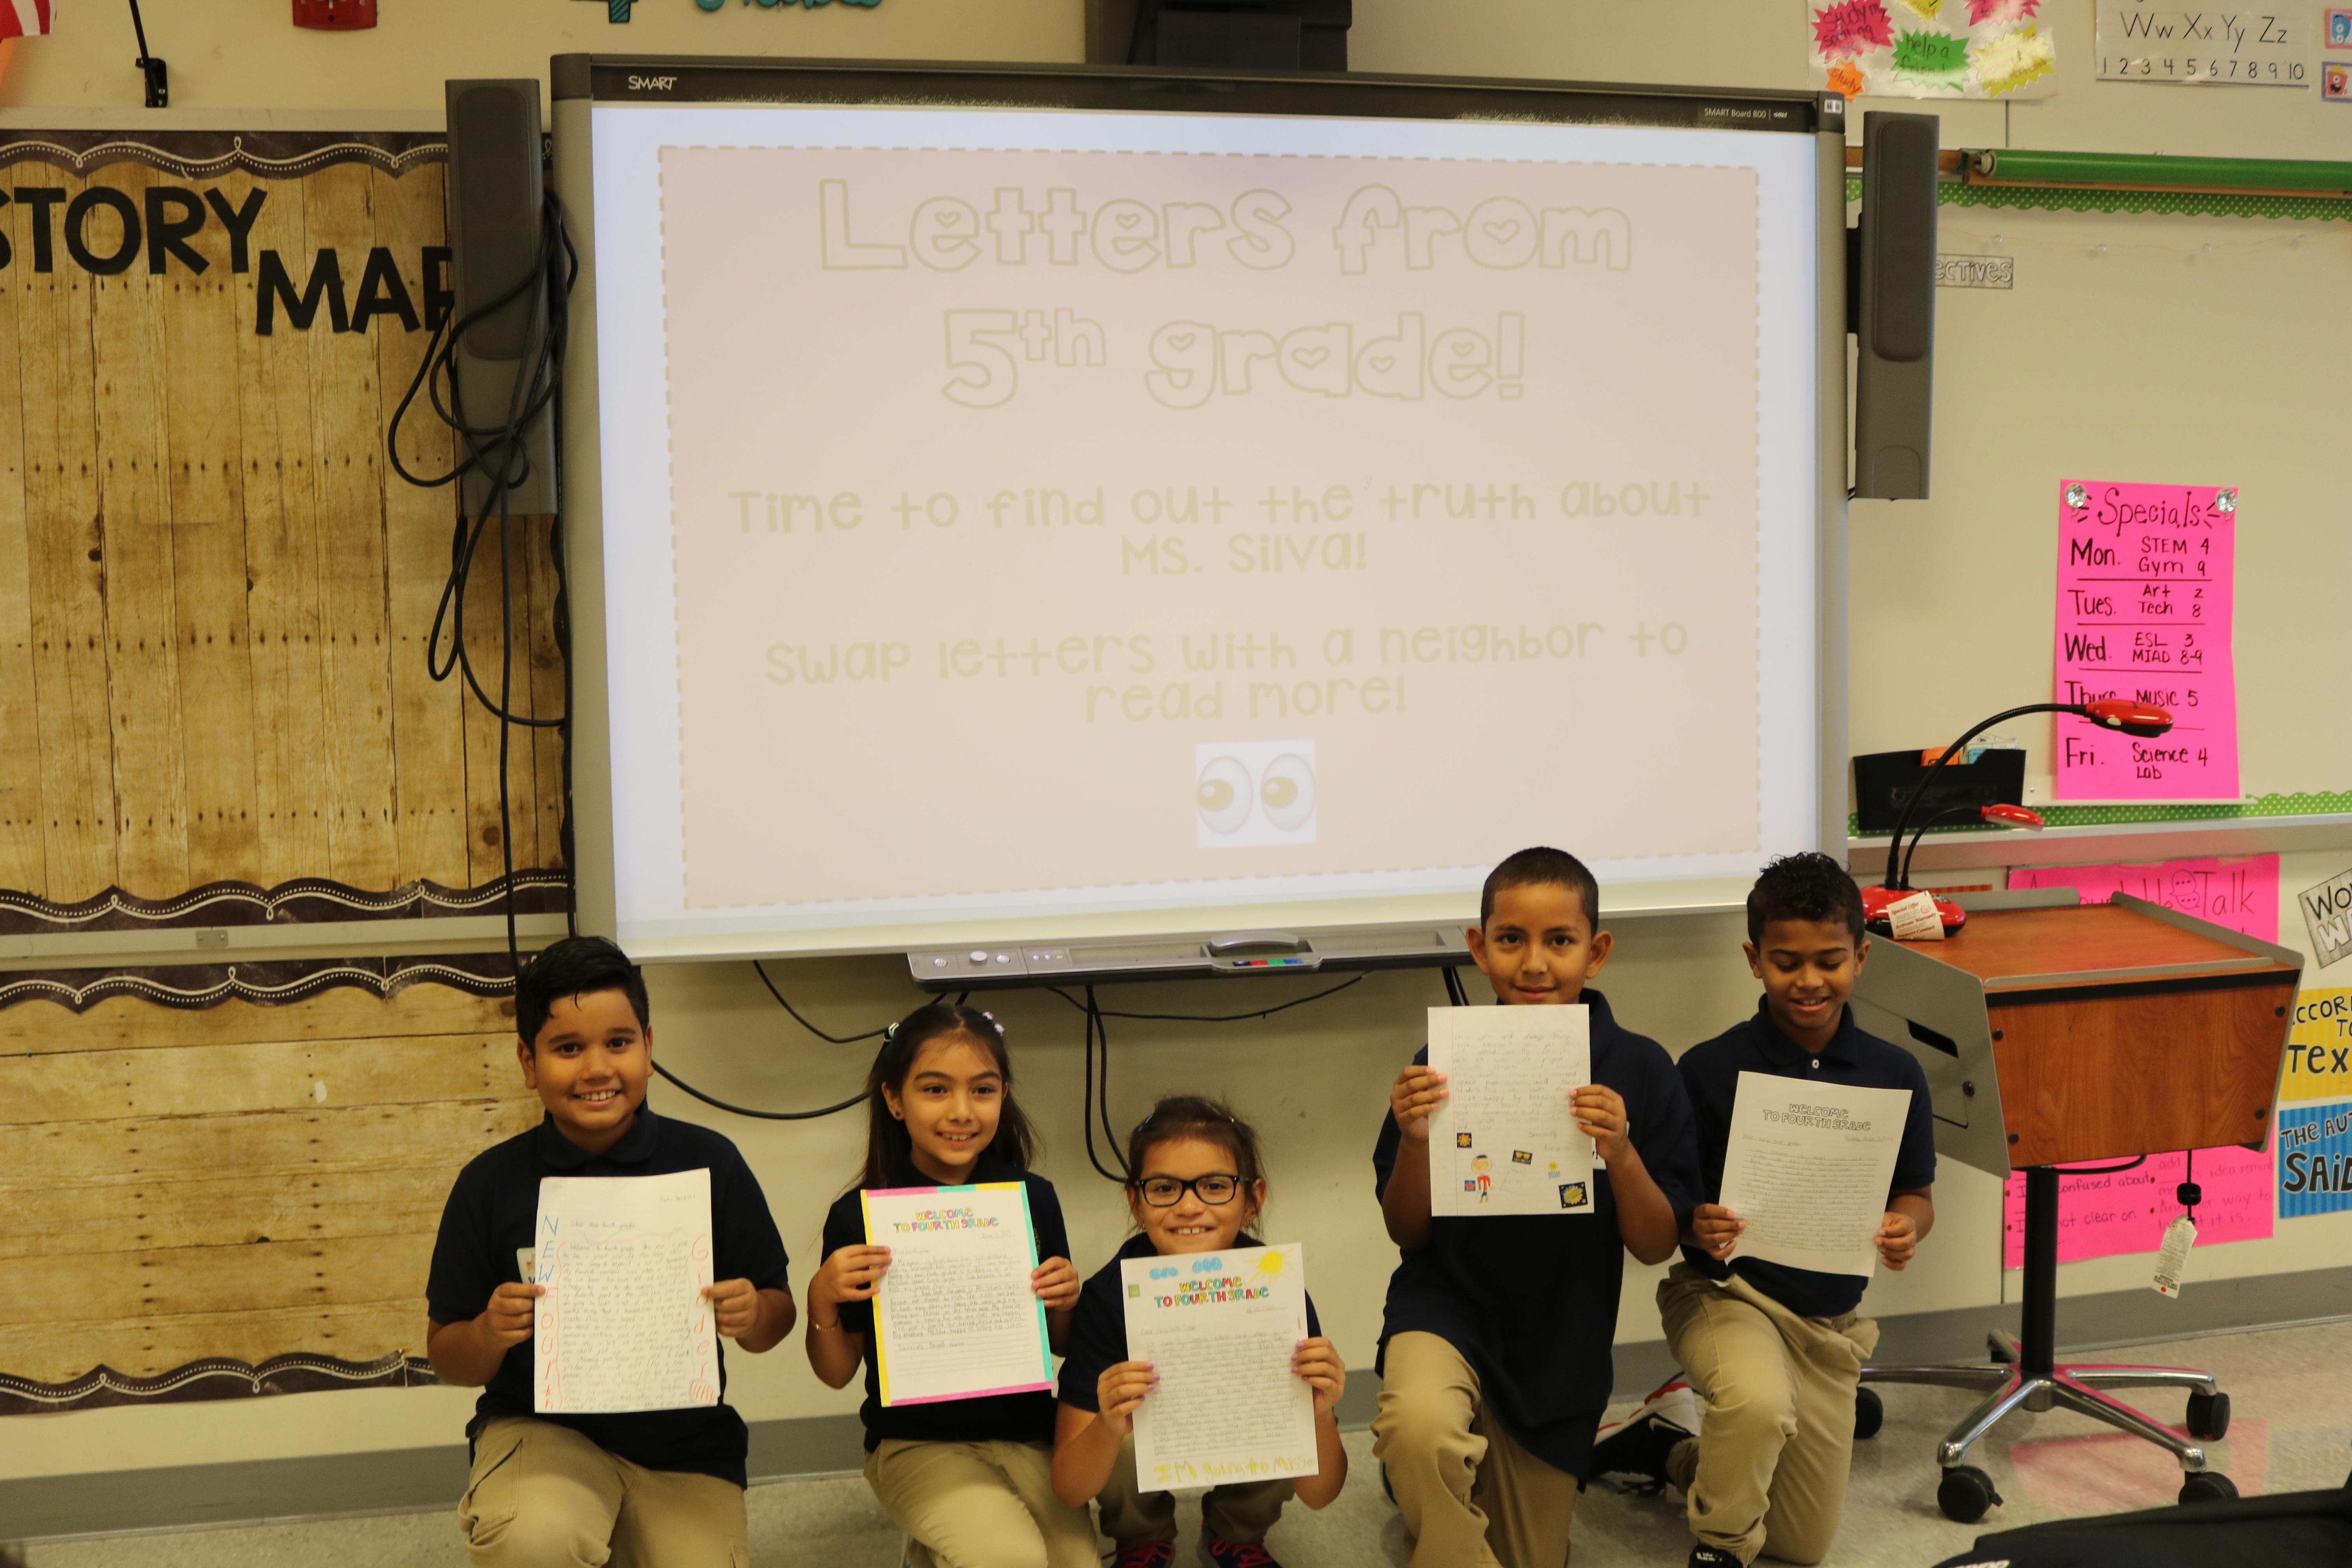 5th grade students proudly showing off their first assignments